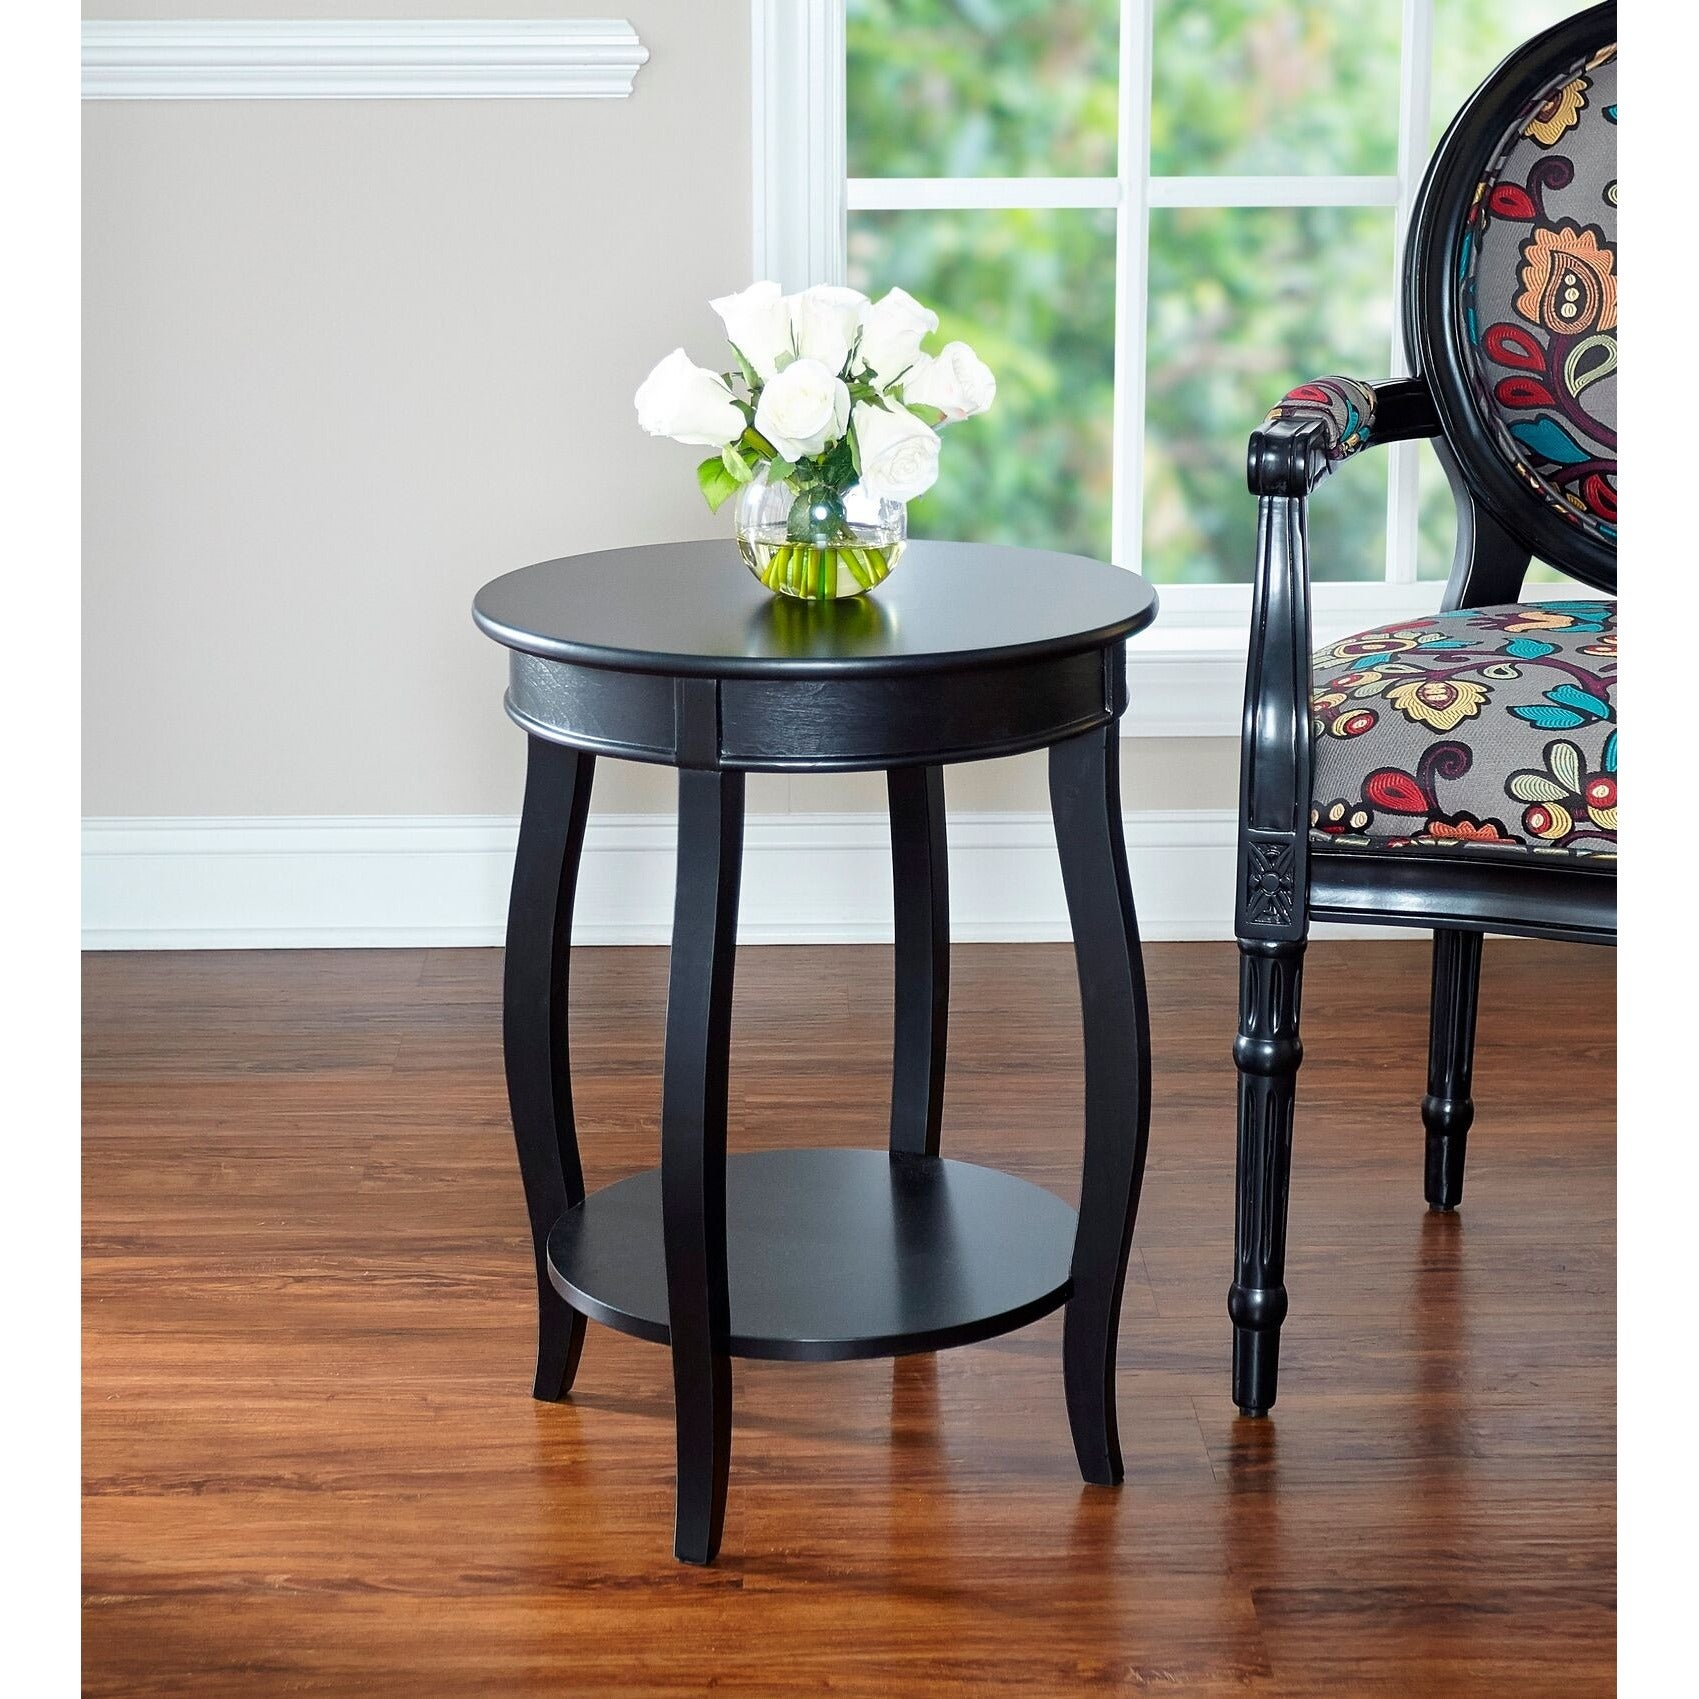 Exceptional Round Table Seaside   Powell Seaside Black Round Table With Shelf   Free Shipping Today    Overstock   16647490